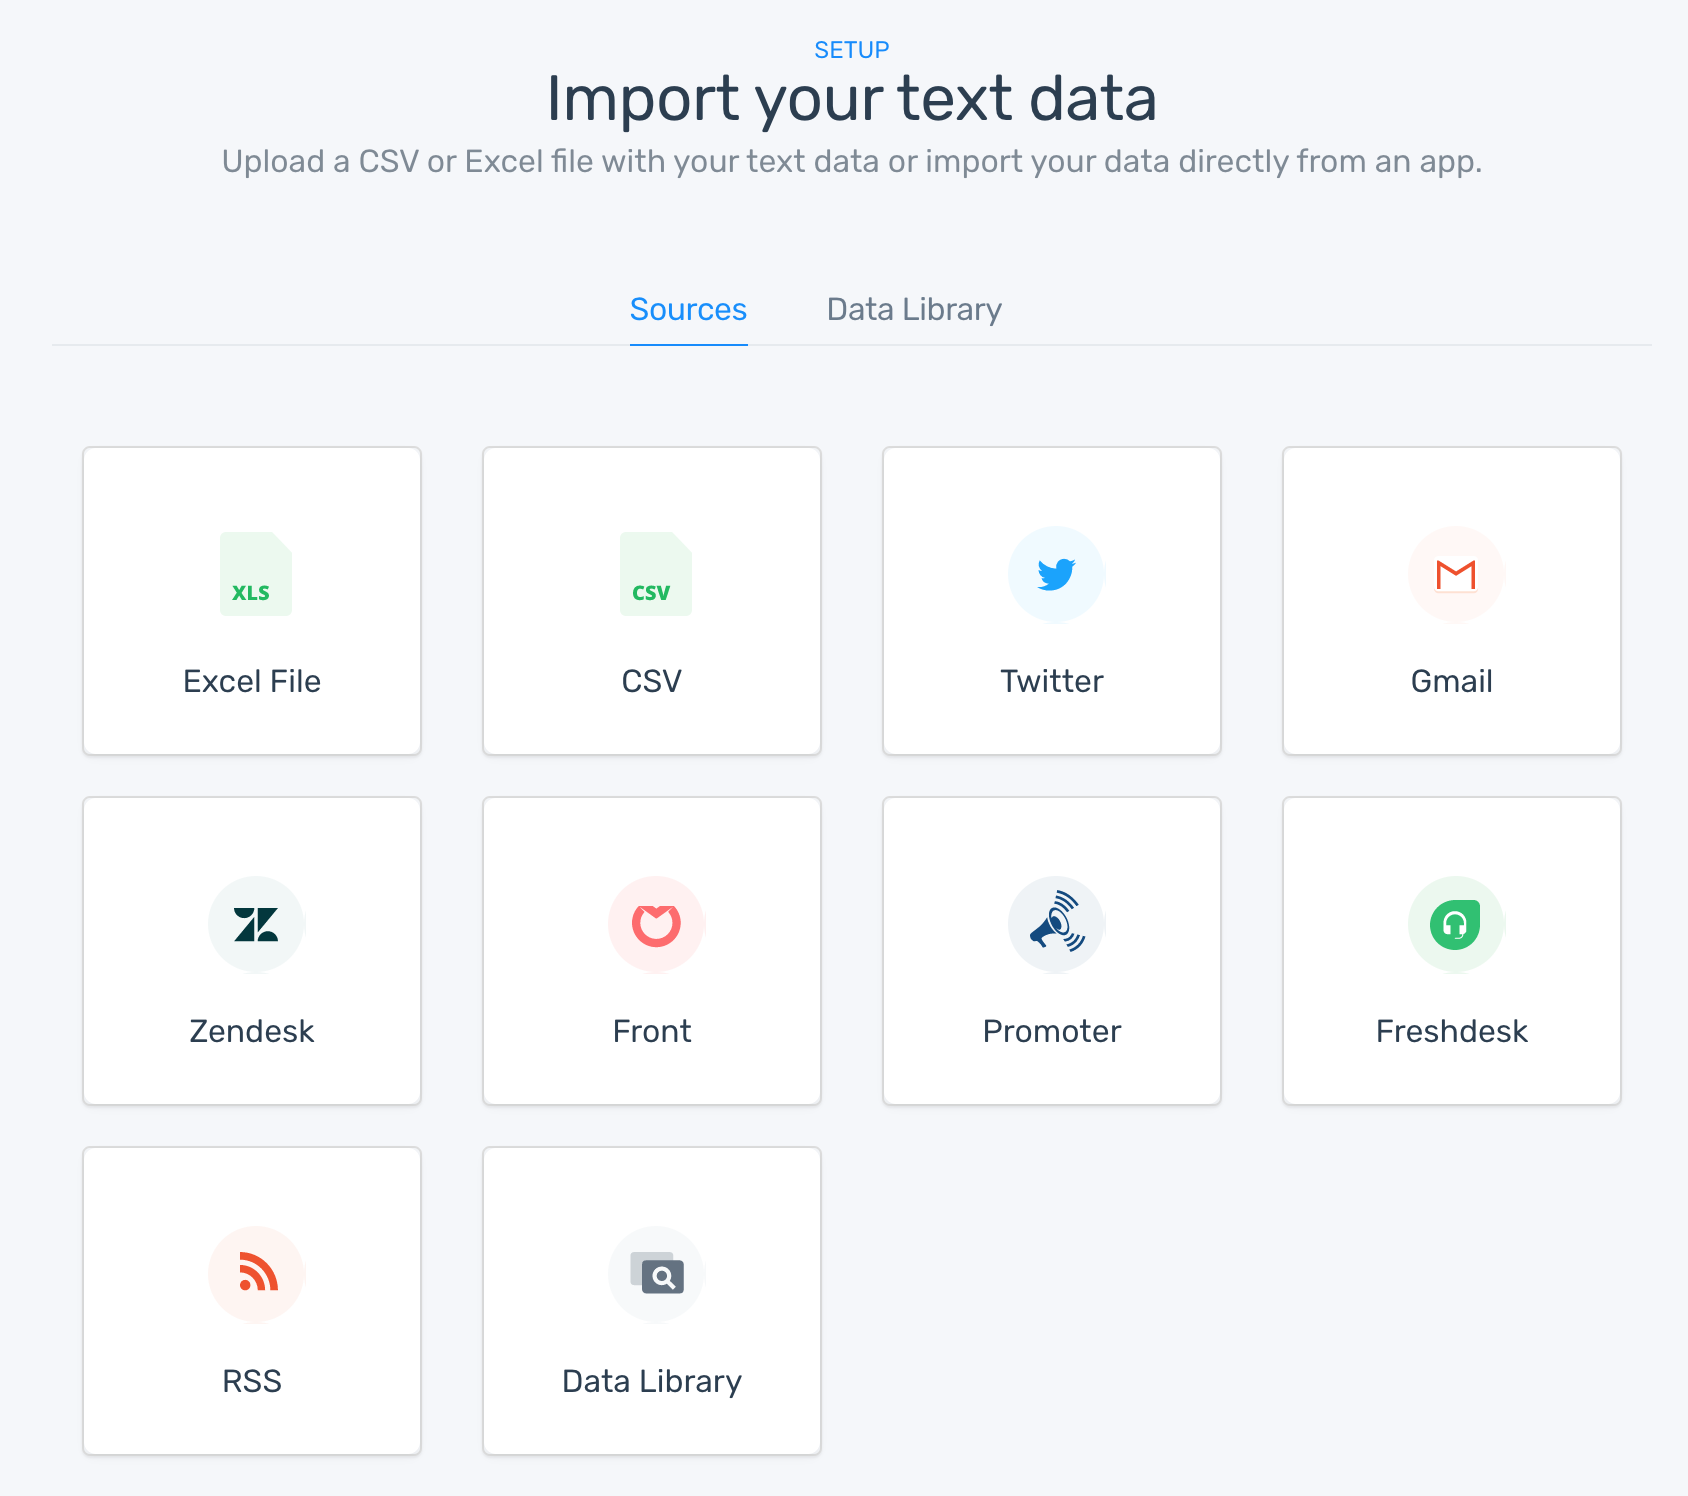 A selection of apps and sources you can click on to connect and upload your data.